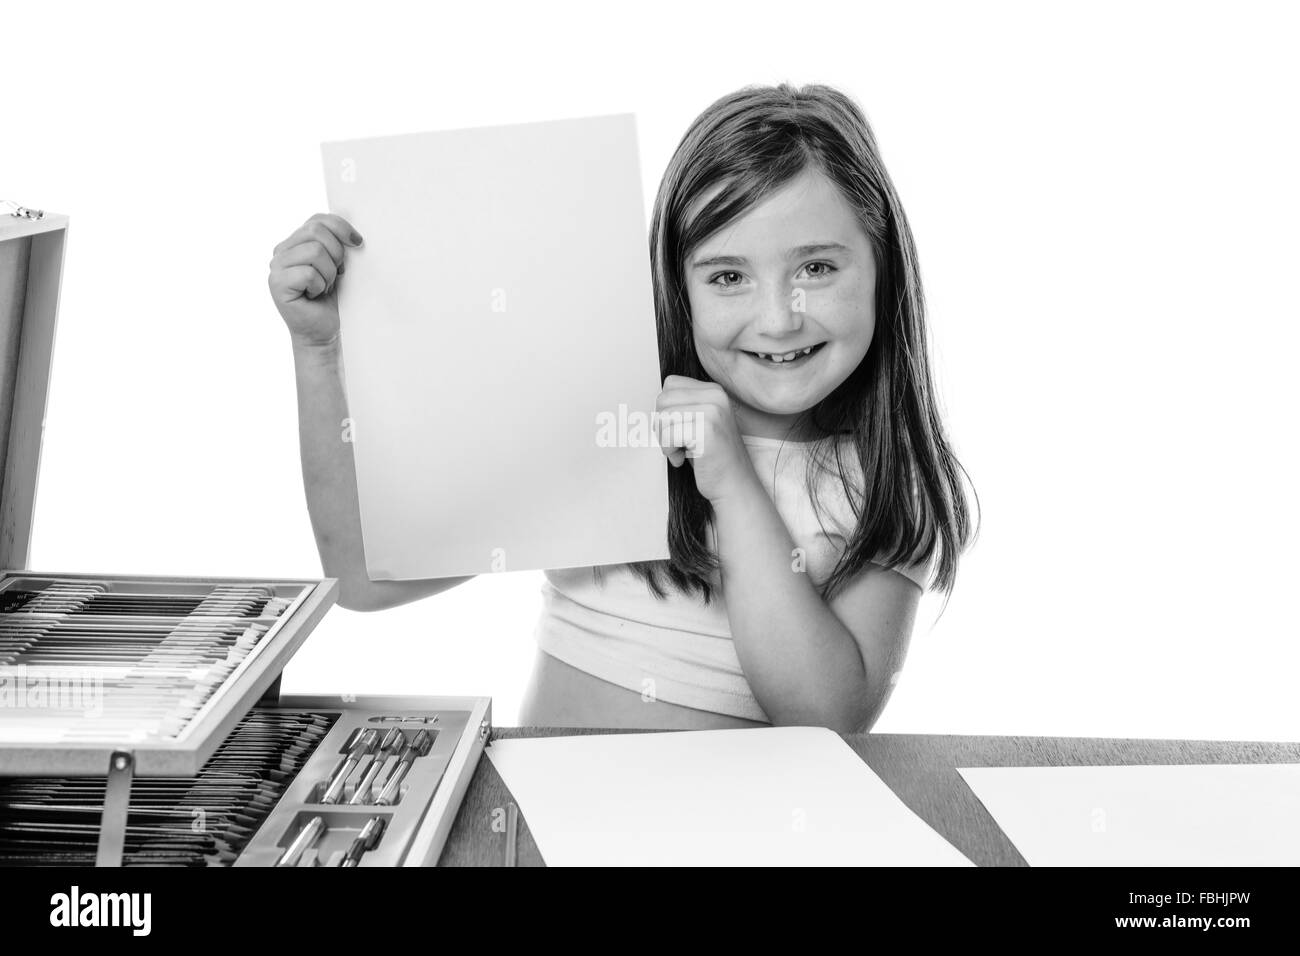 Cute girl shows her blank sheet of paper to the camera - Stock Image